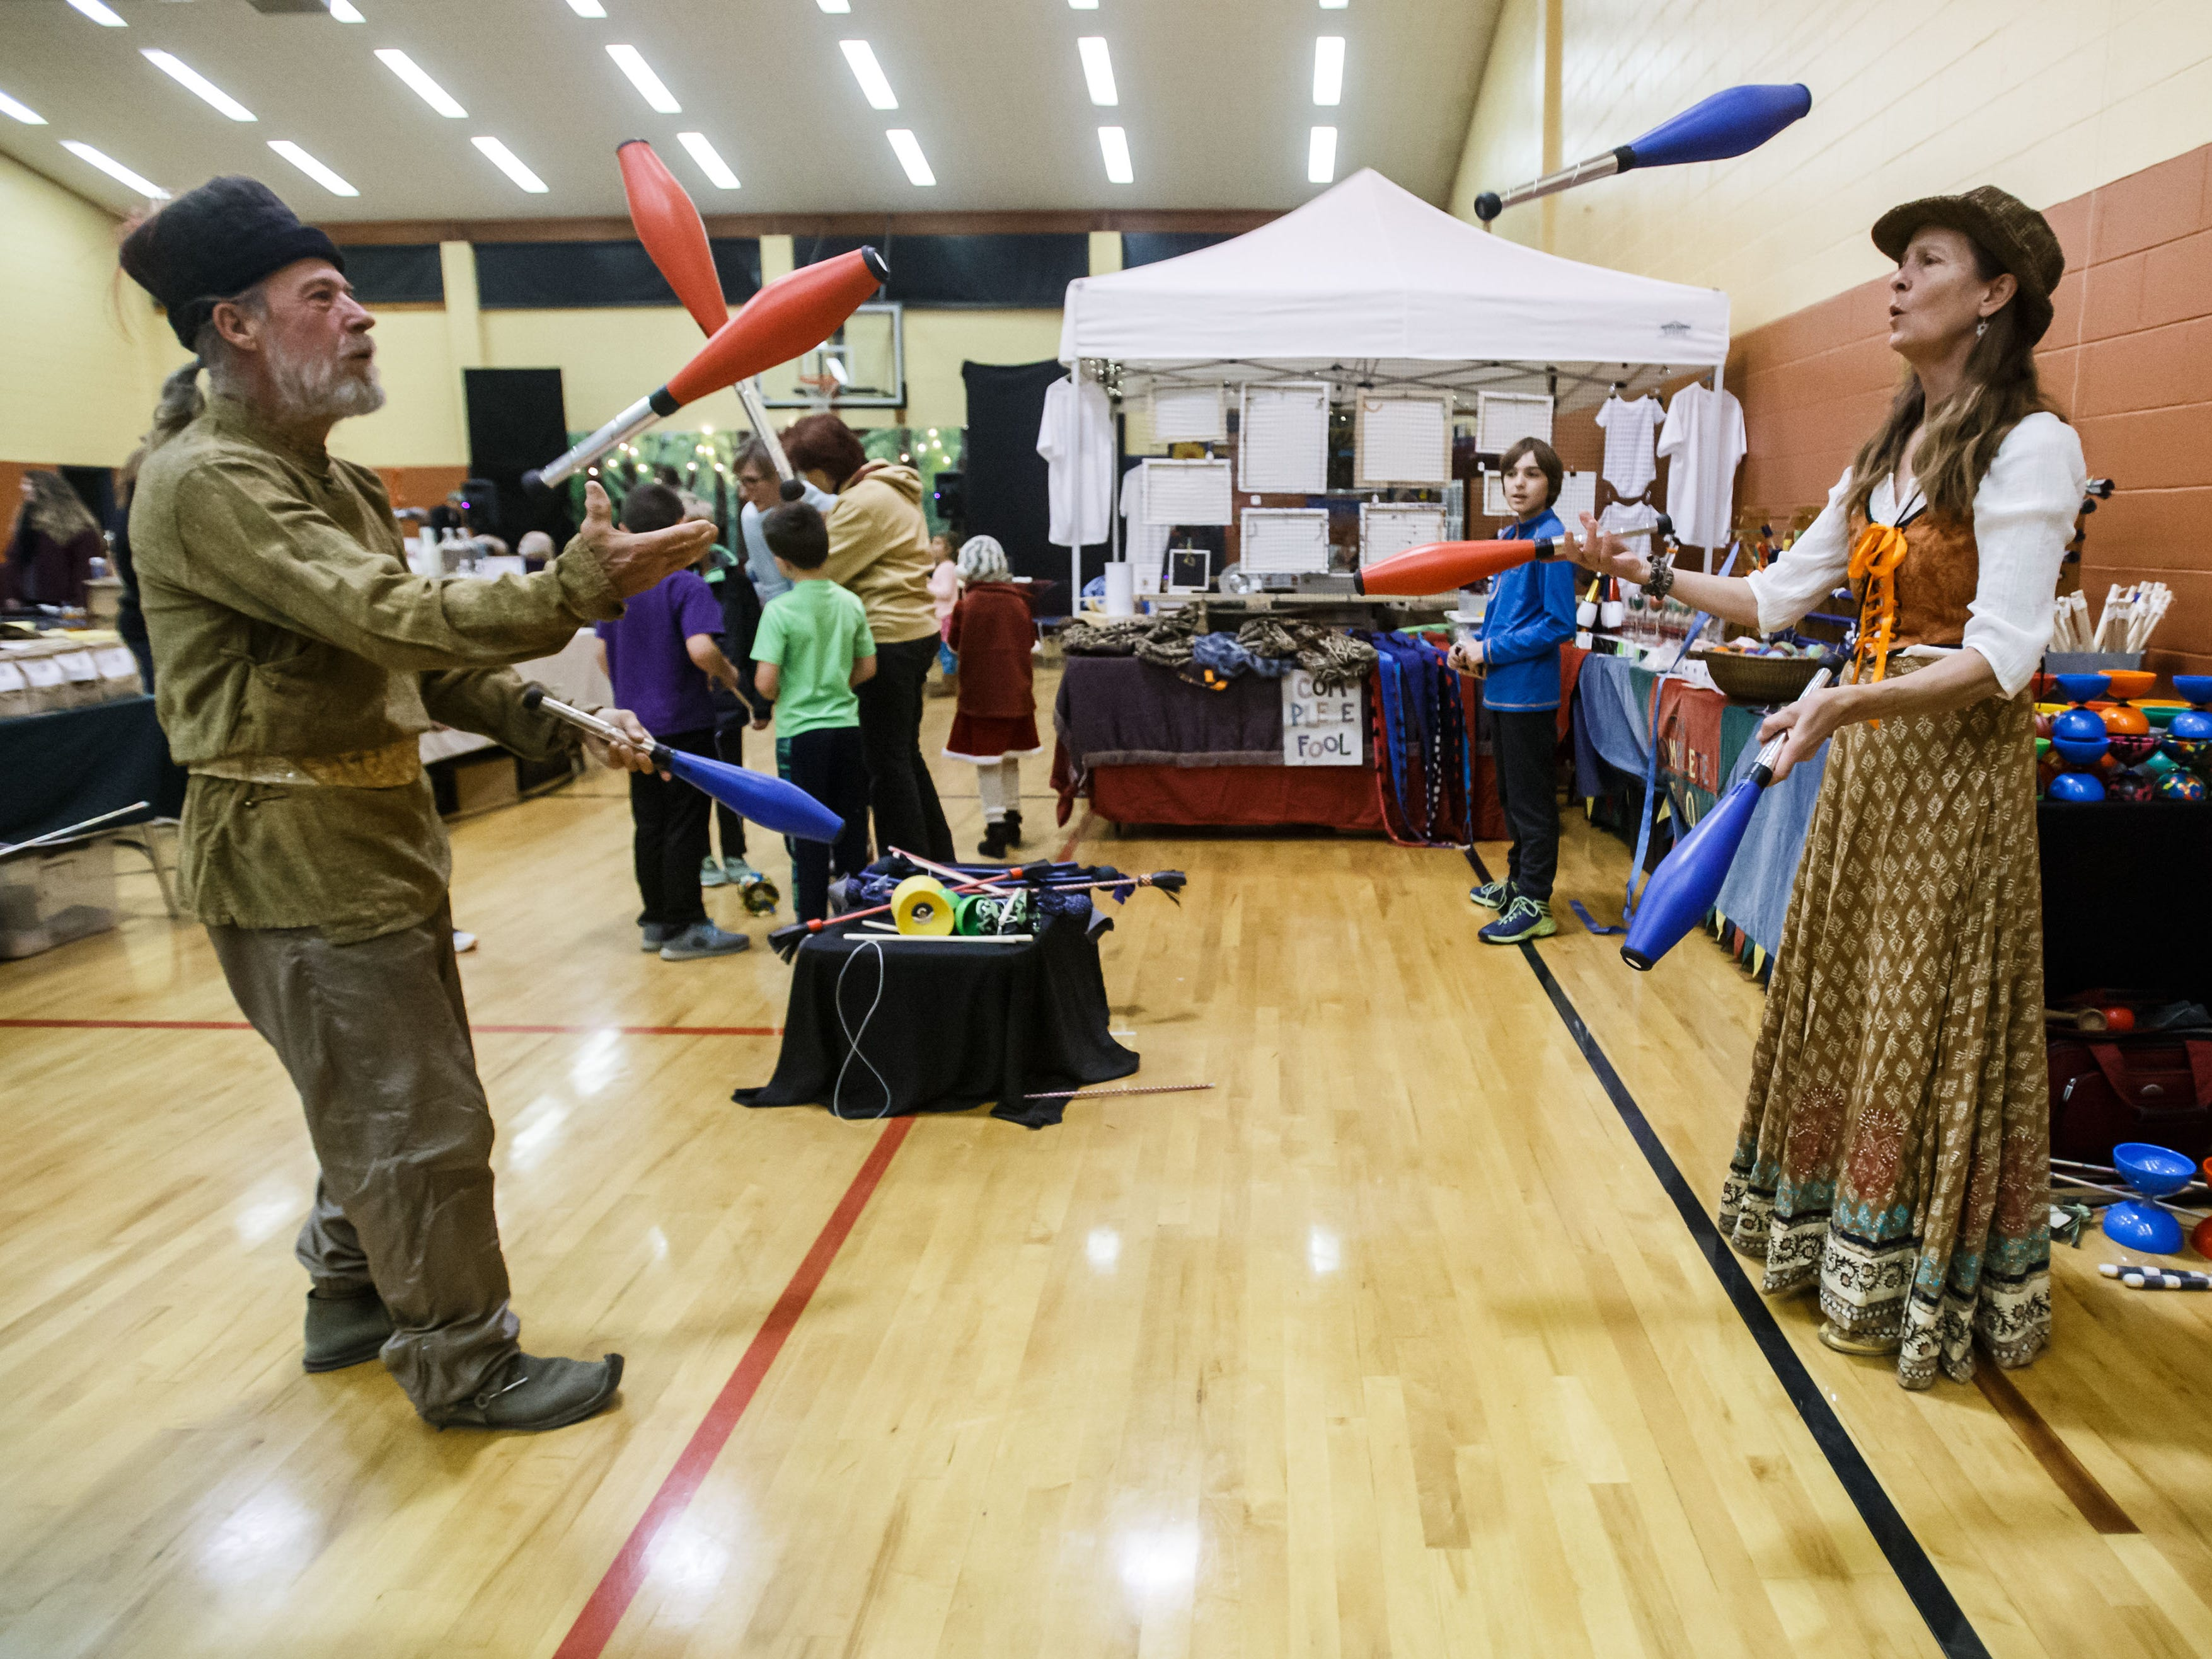 Brian and Rebecca Hendrickson of Madison perform a juggling routine during the 31st annual Yuletide Faire at Prairie Hill Waldorf School in Pewaukee on Friday, Nov. 16, 2018. The magical medieval marketplace features live music, artisans, children's activities, costumed characters, food, refreshments, sweets and more.